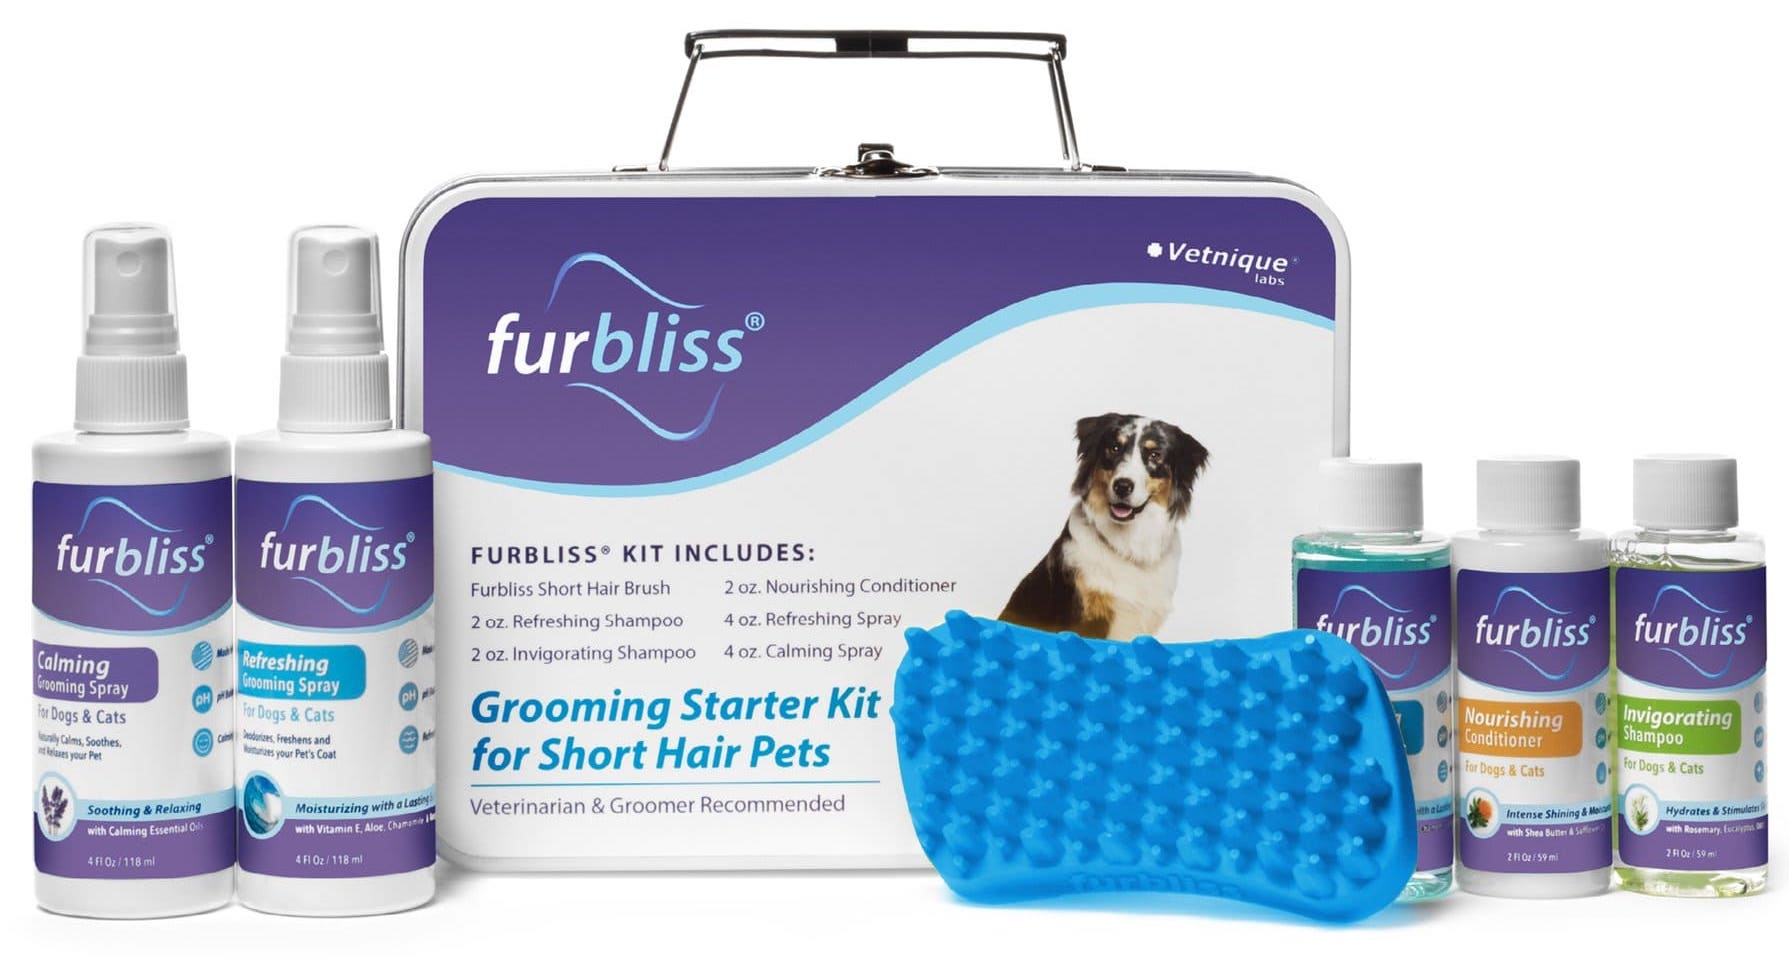 Furbliss Grooming & Bathing Kit 1 count for pets with short hair 1